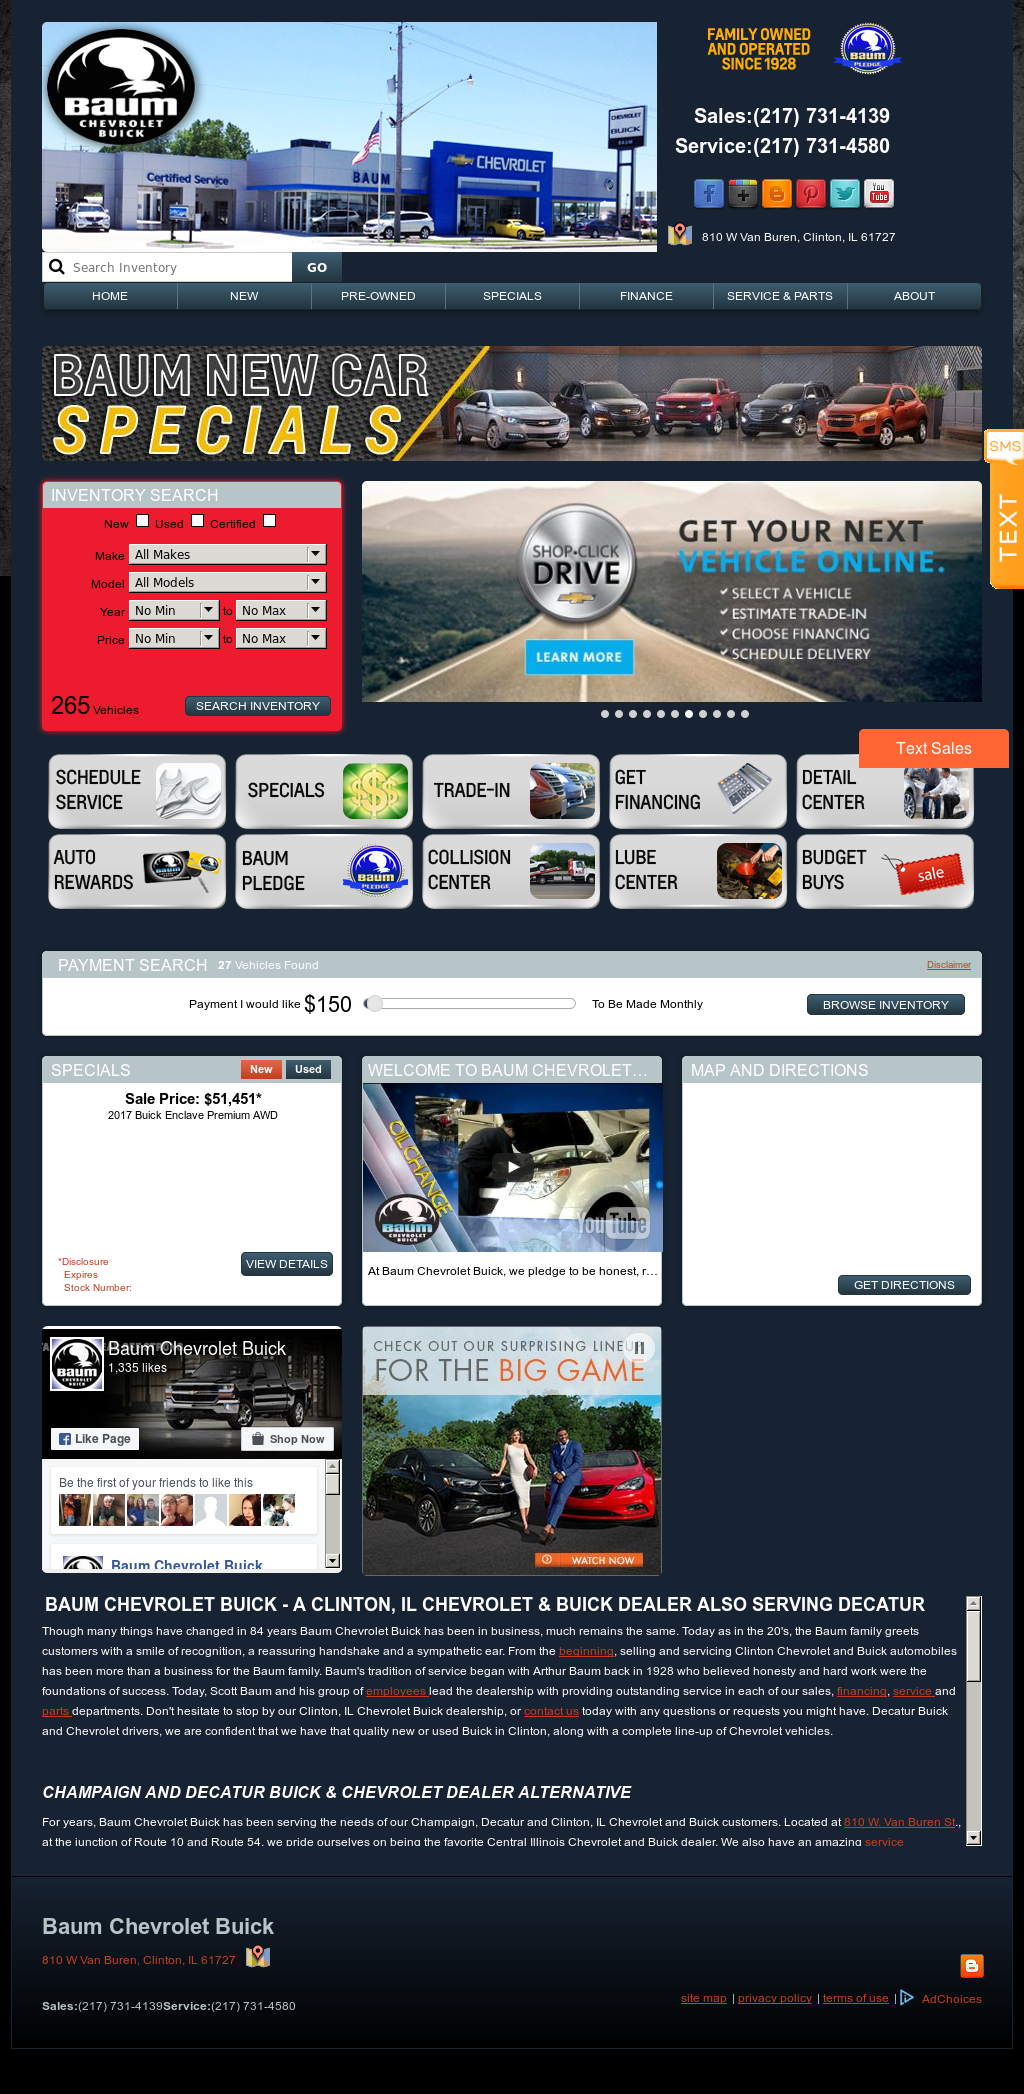 Baum Chevrolet Buick Website History